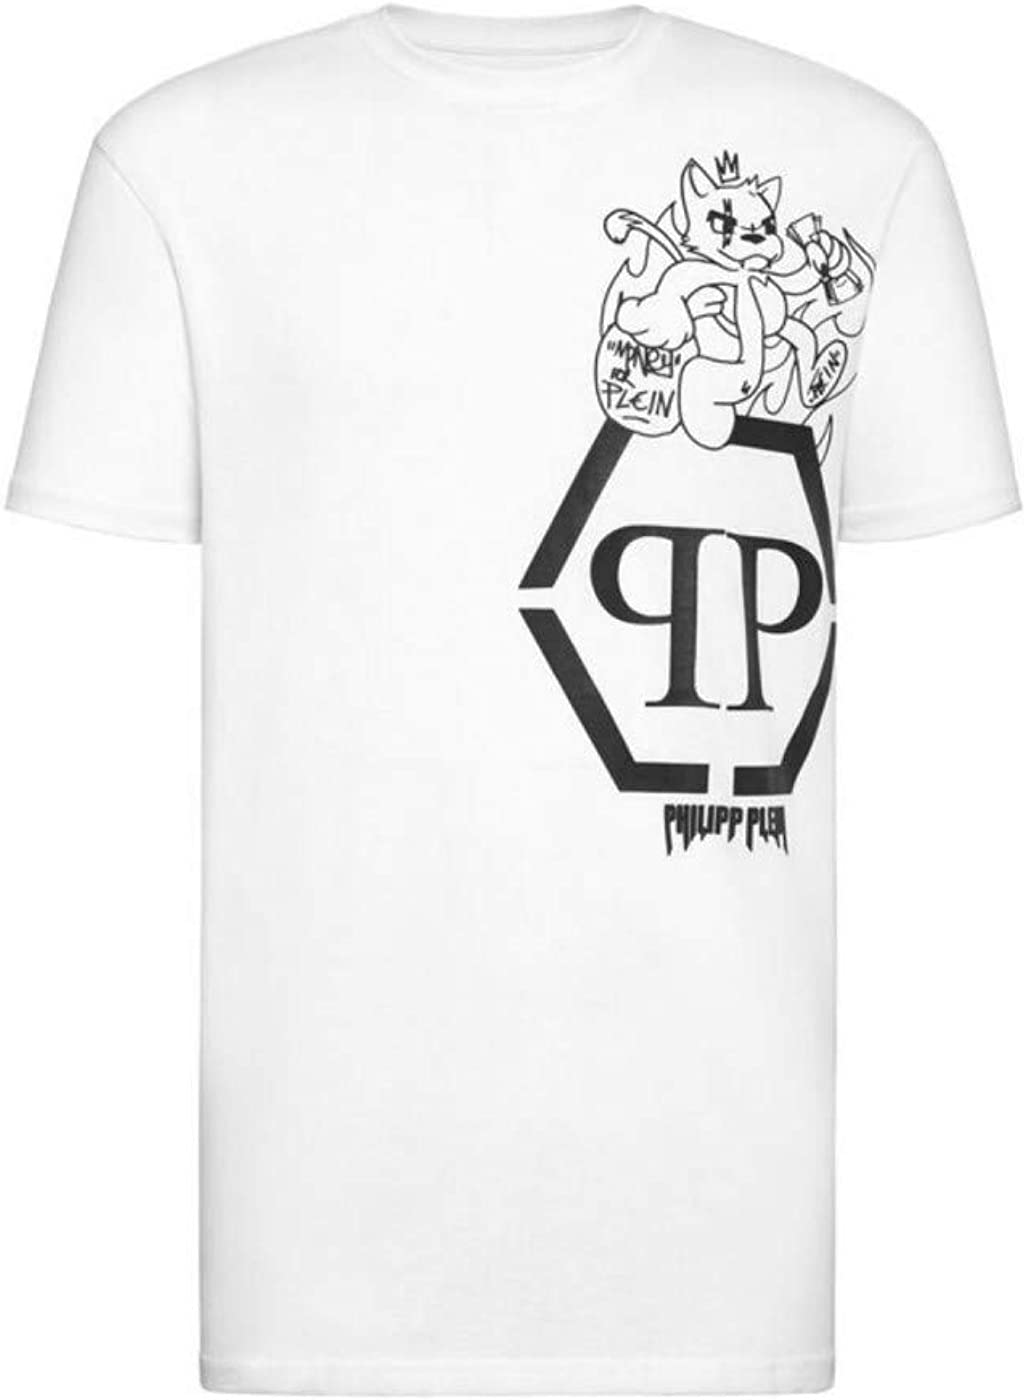 Philipp Plein T Shirt White Size Xl Amazon Co Uk Clothing